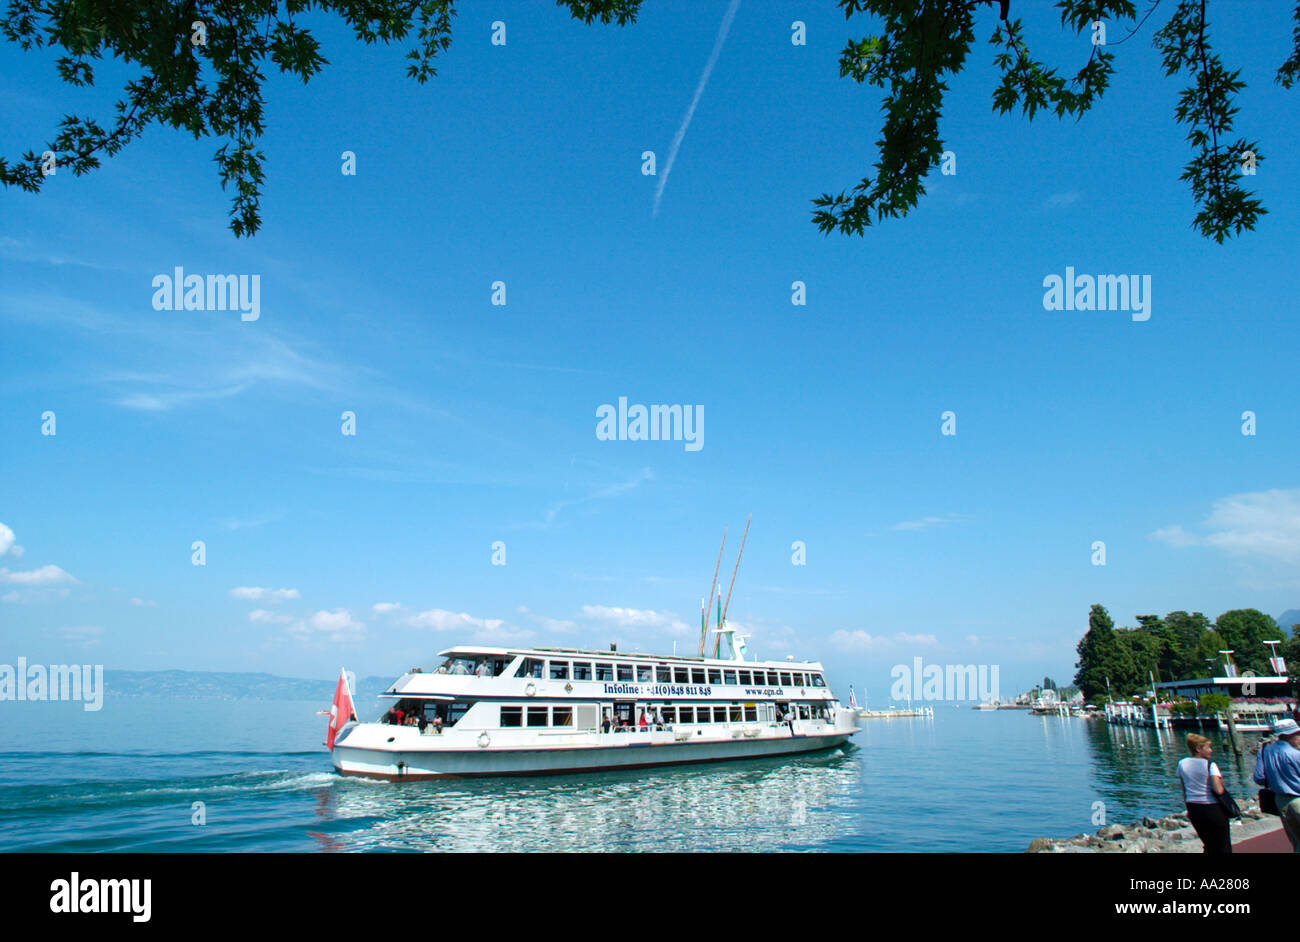 Cruise boat/ferry off the lakefront in Evian, Lake Geneva (Lac Leman), France - Stock Image